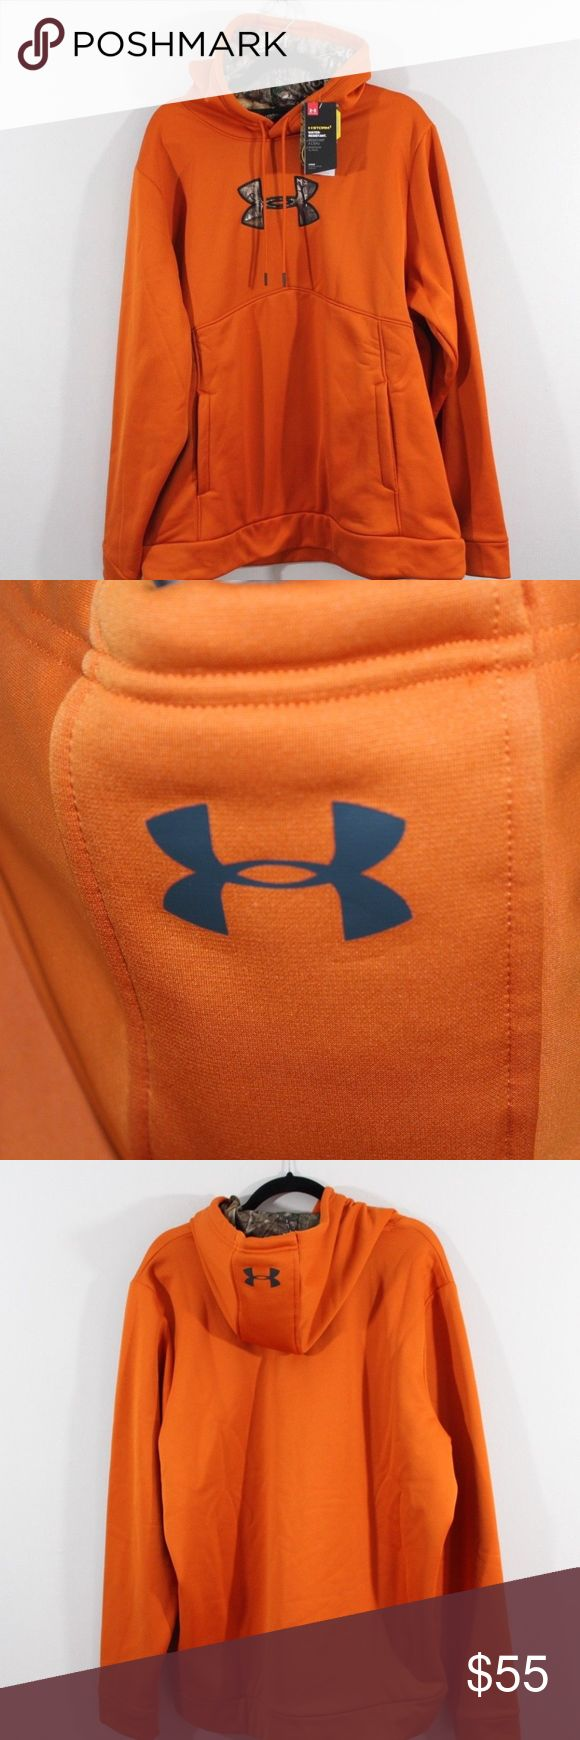 New Under Armour Real Tree Hunting Hoodie Sweater Under Armour Hunting Camouflage Hoodie Sweater  Excellent sweater  New  Orange  The size is XL and the measurements are 26 inches underarm to underarm and 30 inches  Check out my other items for sale in my store!  C14 Under Armour Sweaters